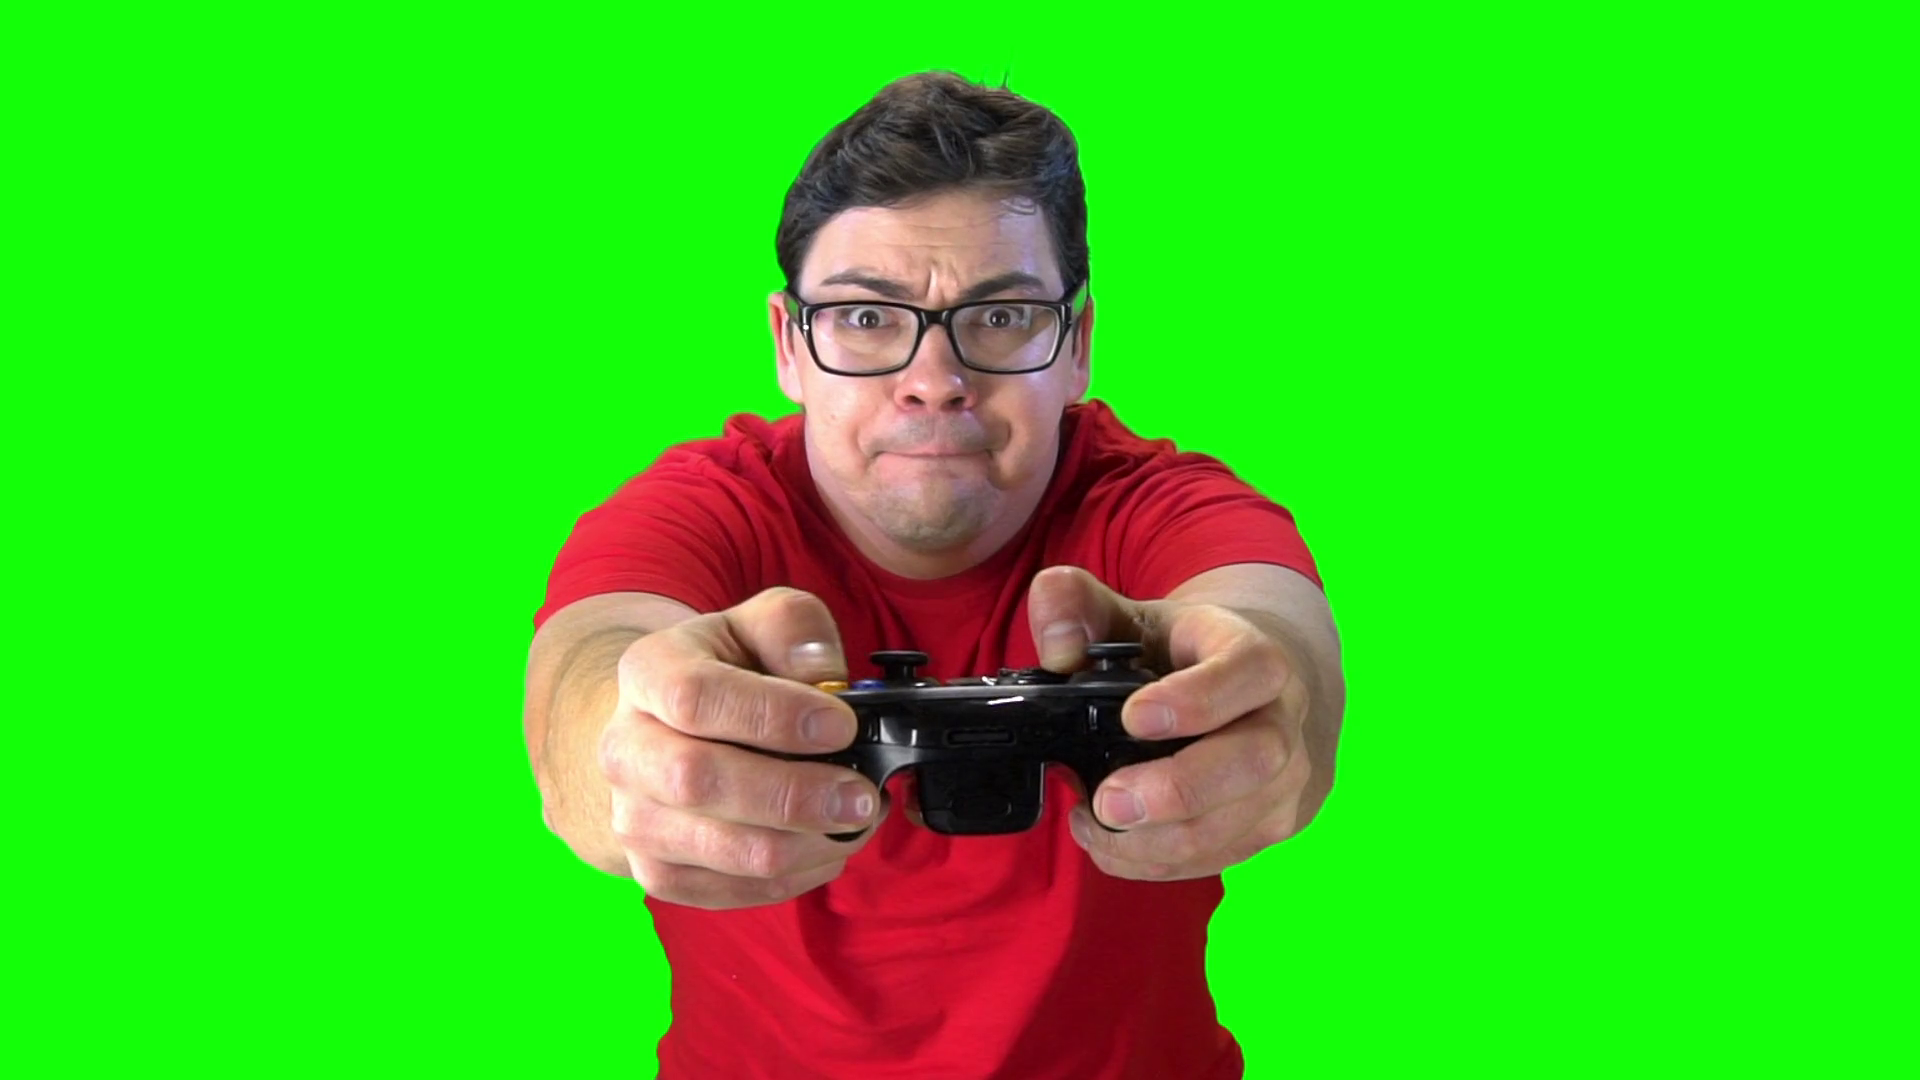 Some One Playing Video Game Png On Screen - Man holding game controller playing video games. Green screen ...